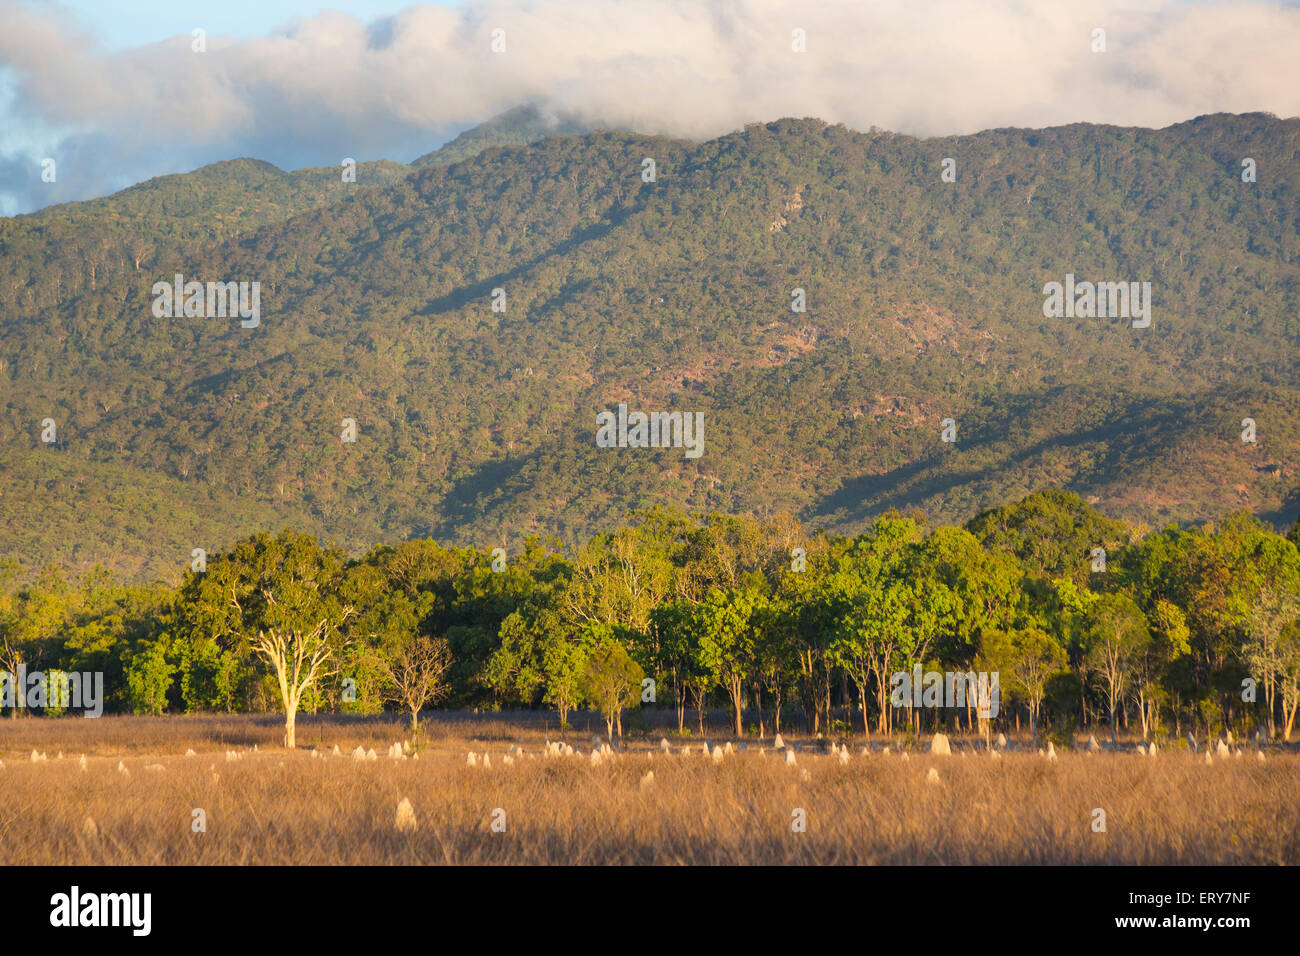 Grazing fields with the Mount Carbine tablelands in the background, Queensland, Australia - Stock Image